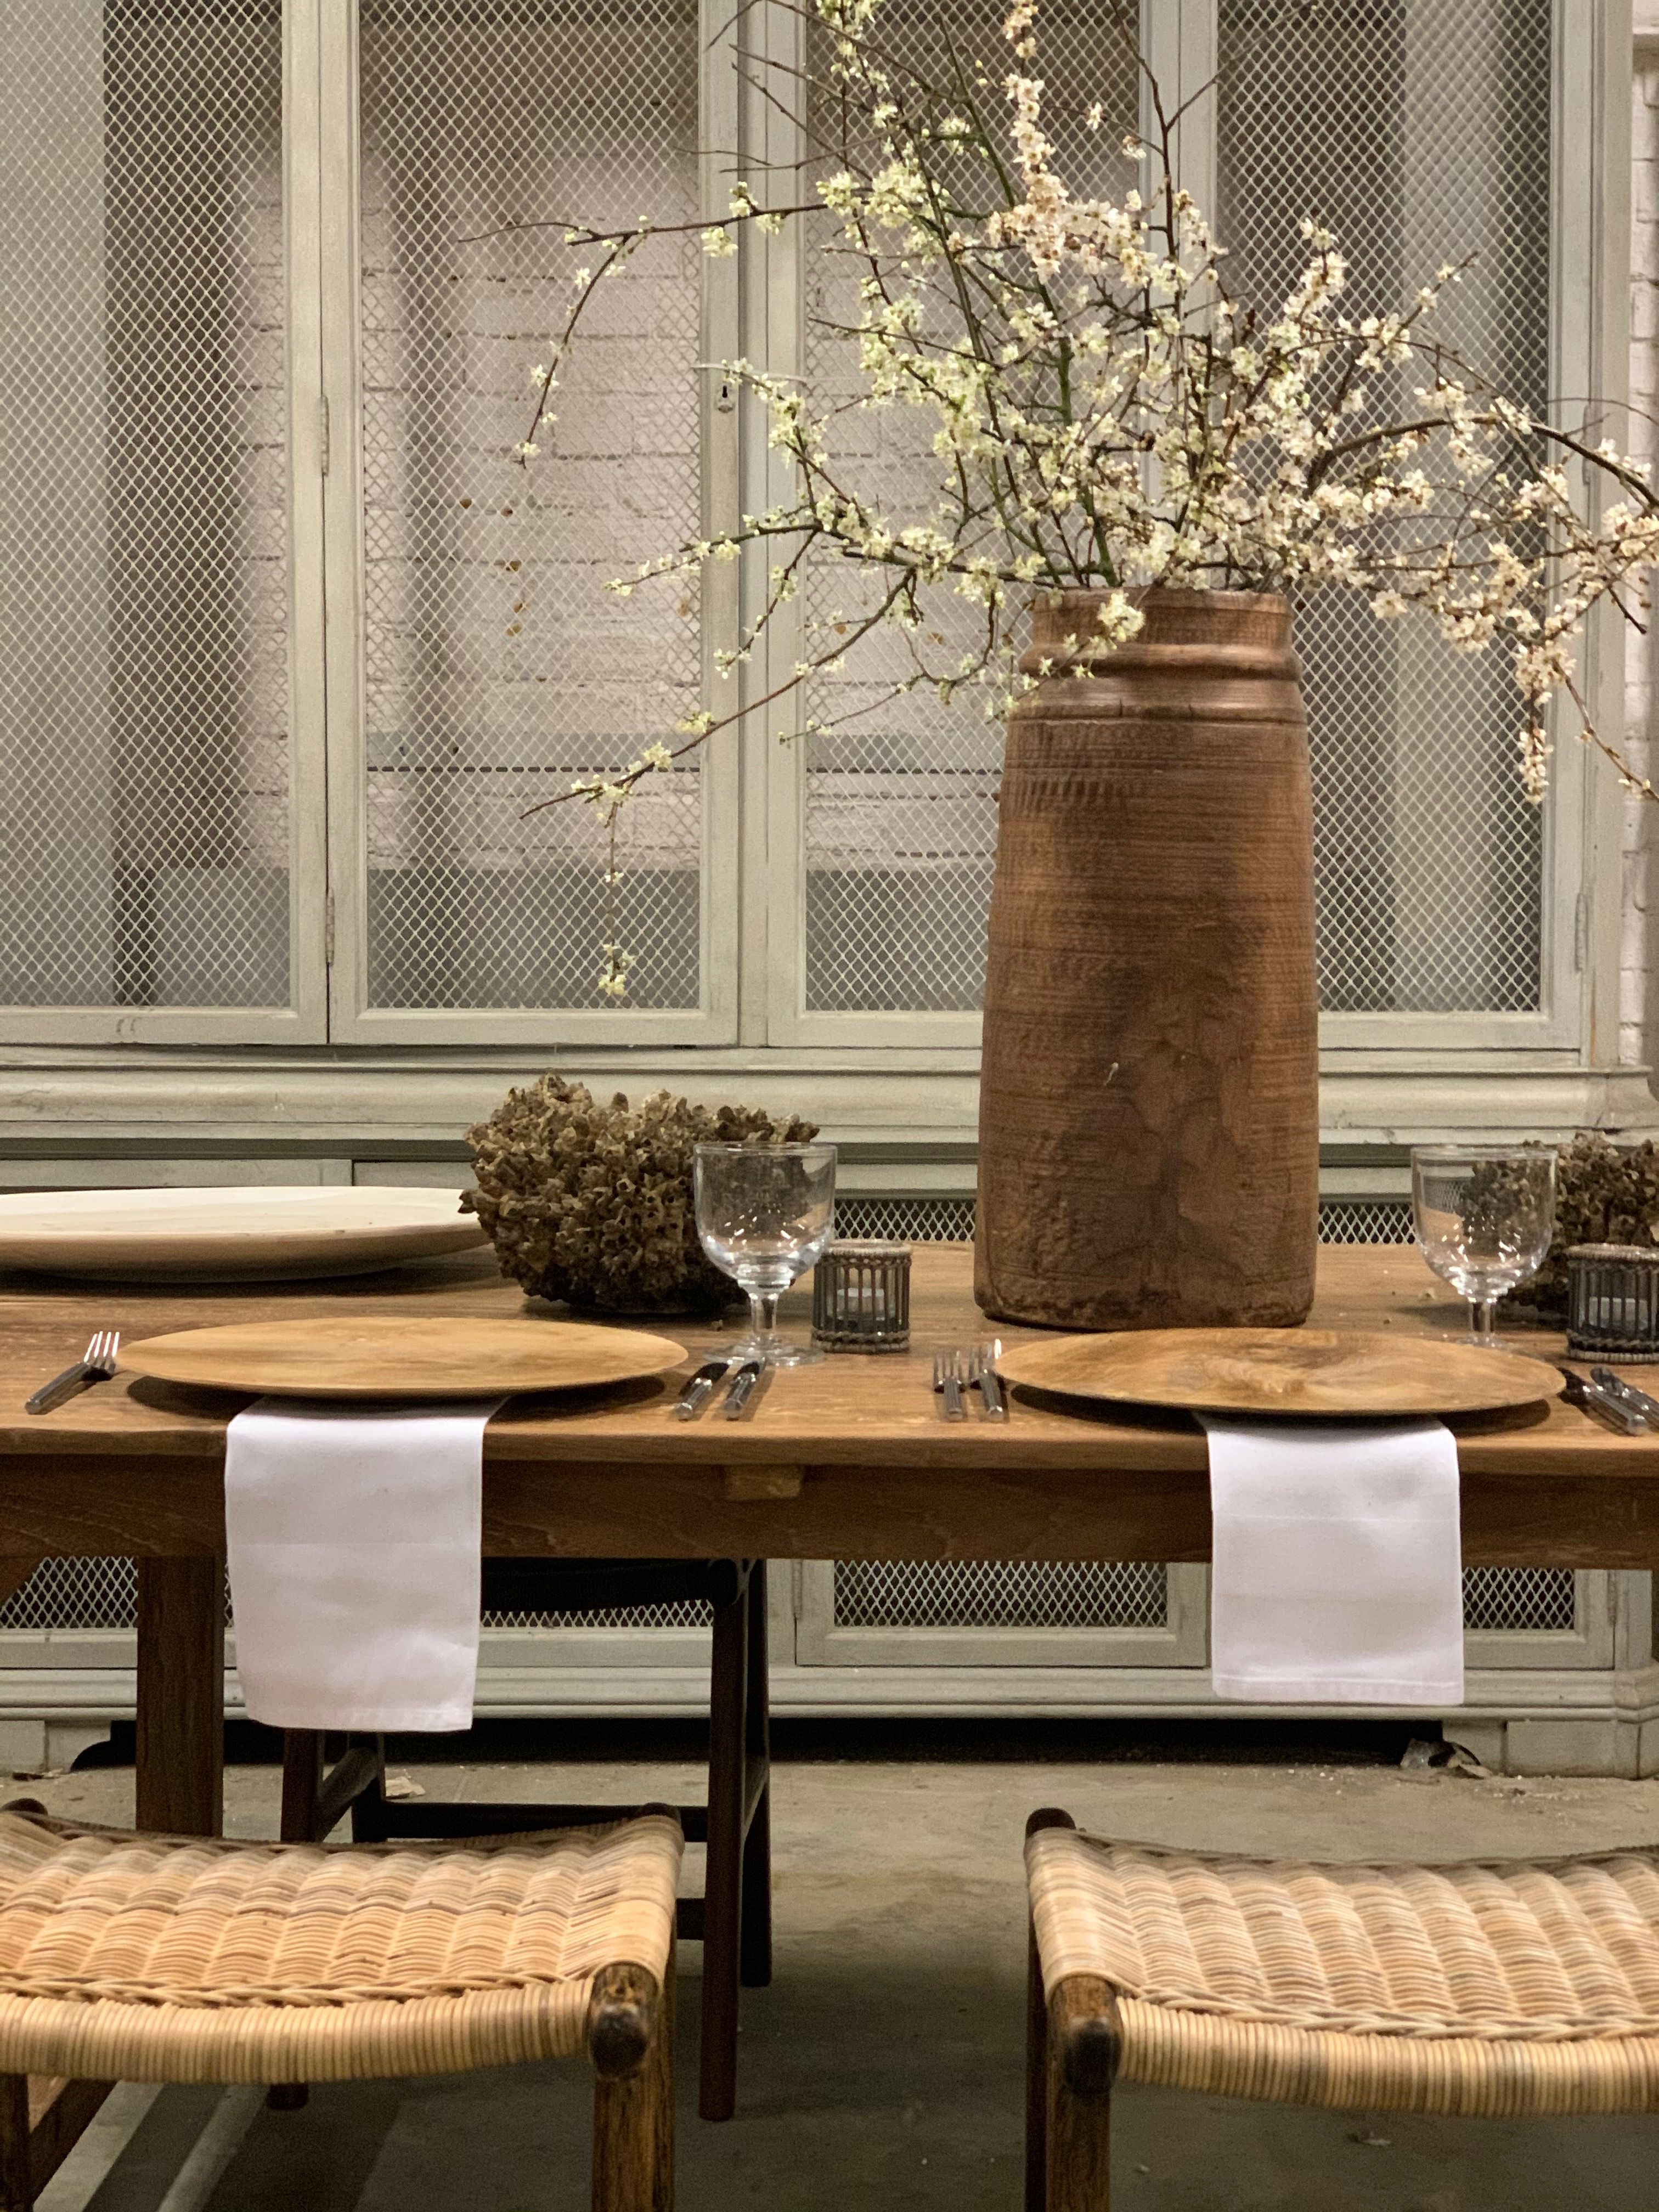 Dining Table Table Decor Homewares Blossom Homestyle In 2020